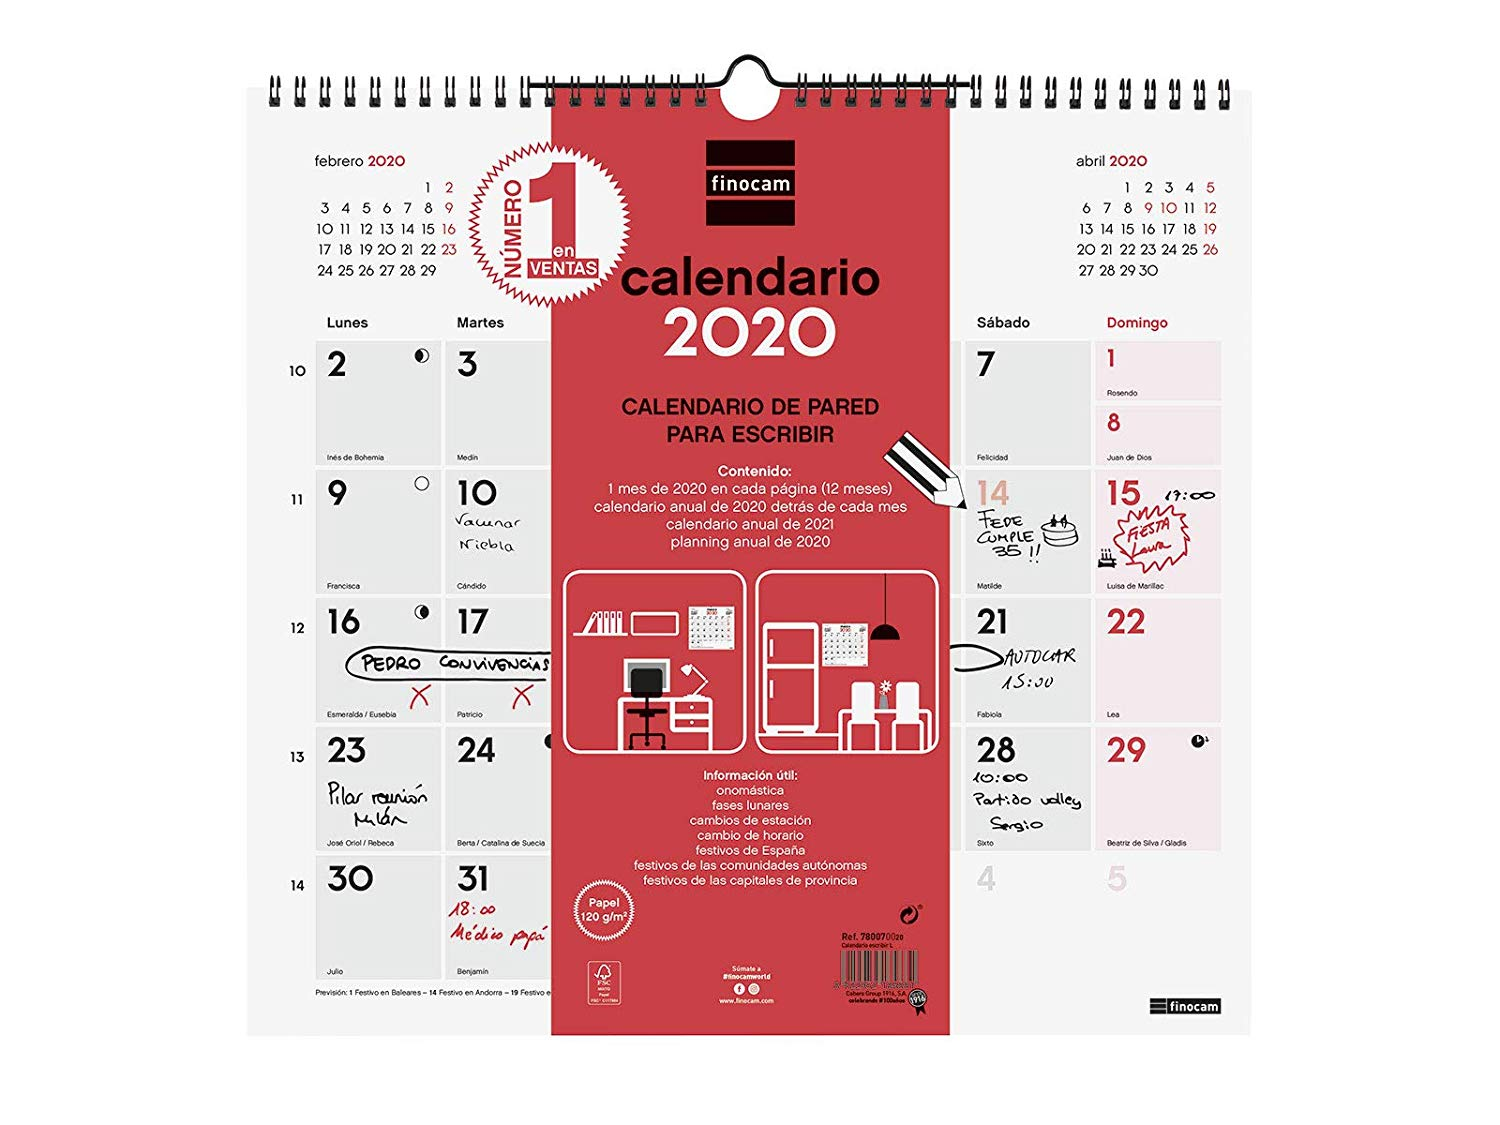 Finocam Escribir, Calendario de Pared 2020, L - 340 x 320 mm